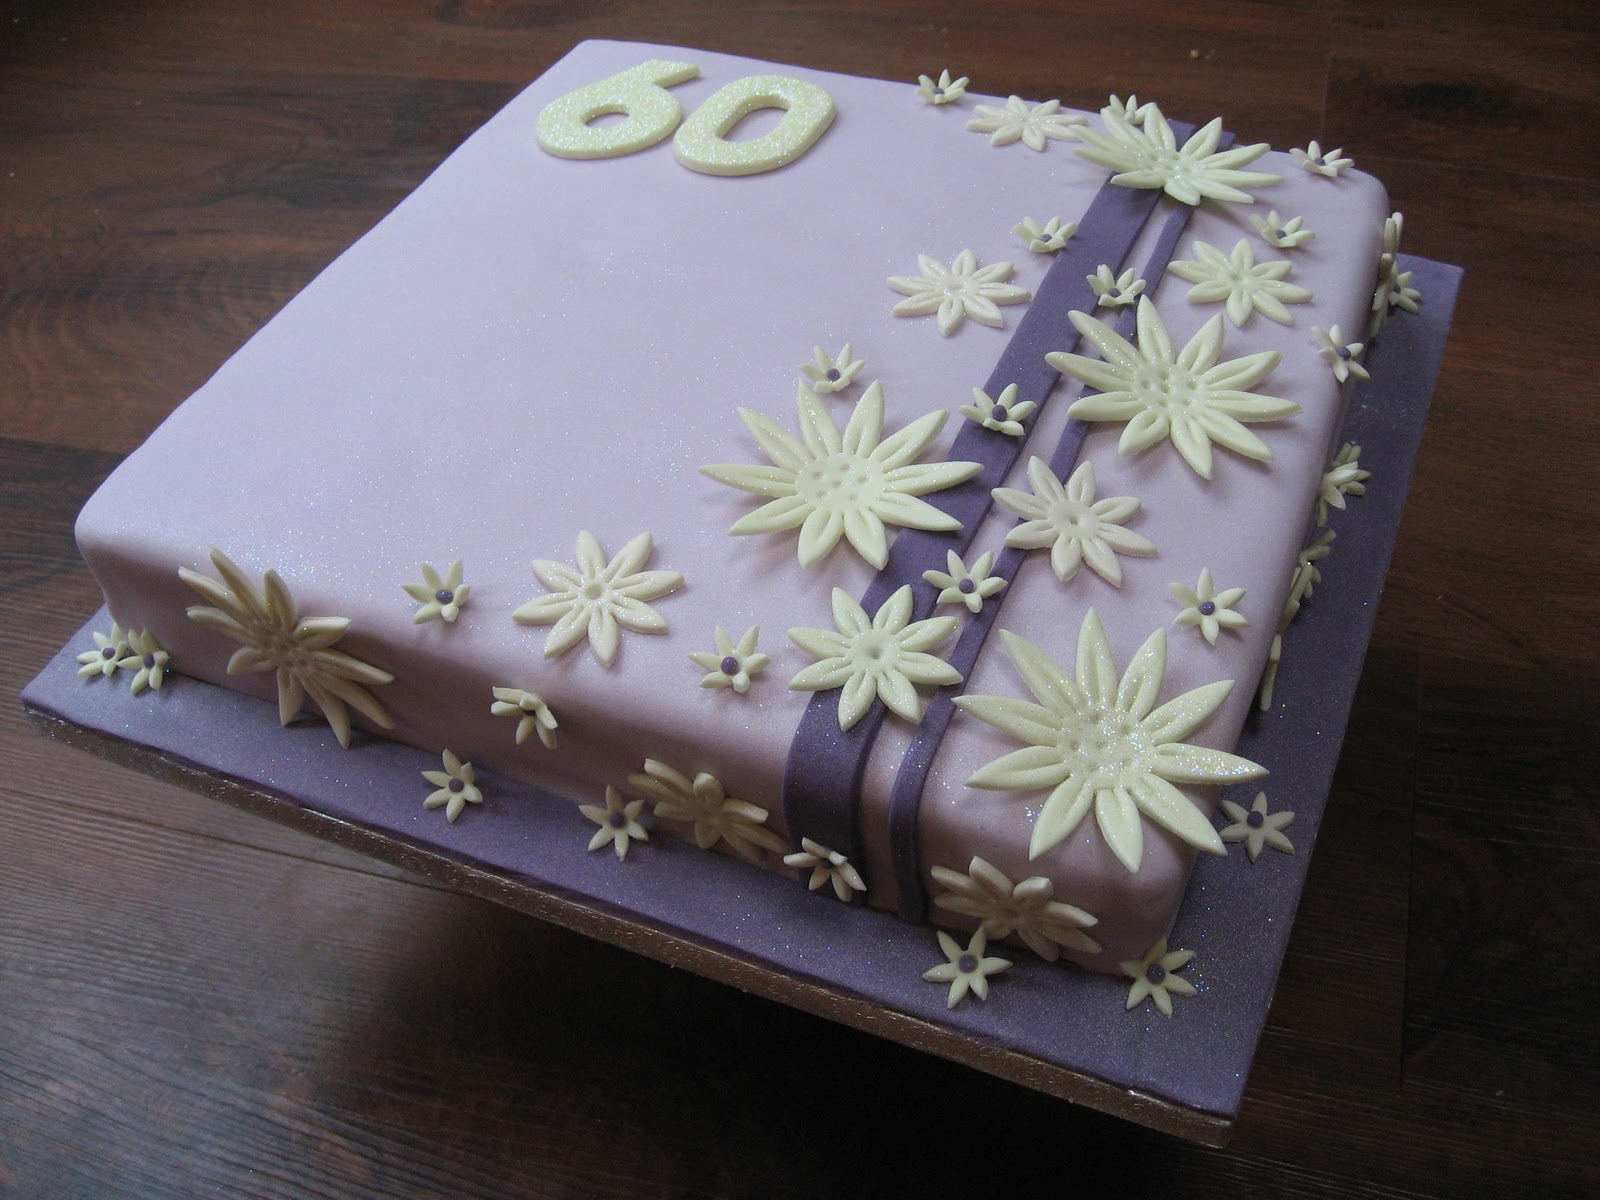 Sugarbuttons 60th Birthday Cake